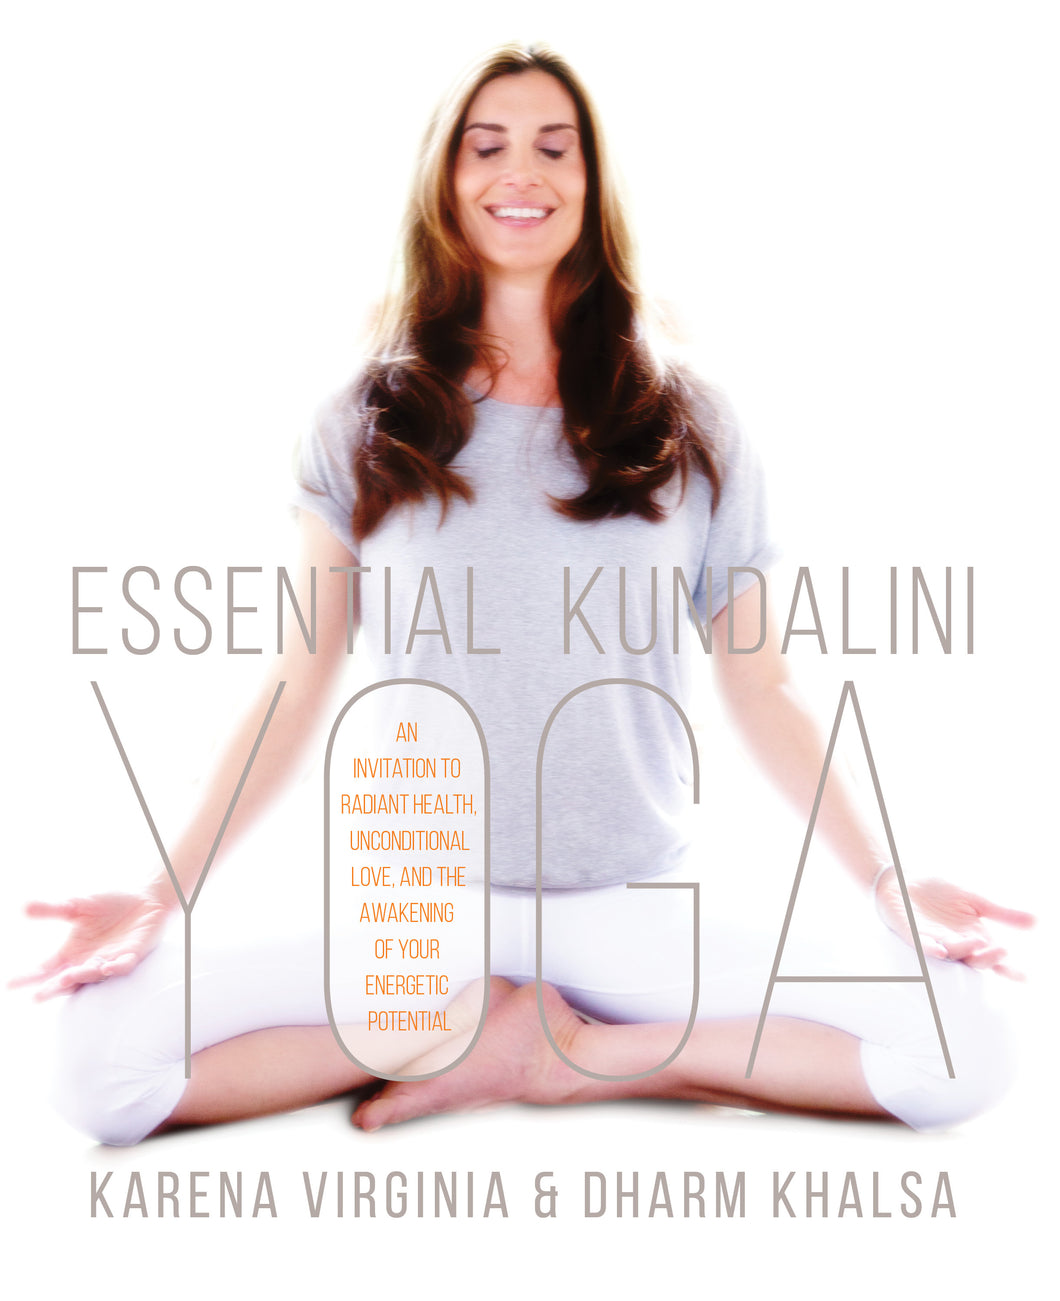 Essential Kundalini Yoga